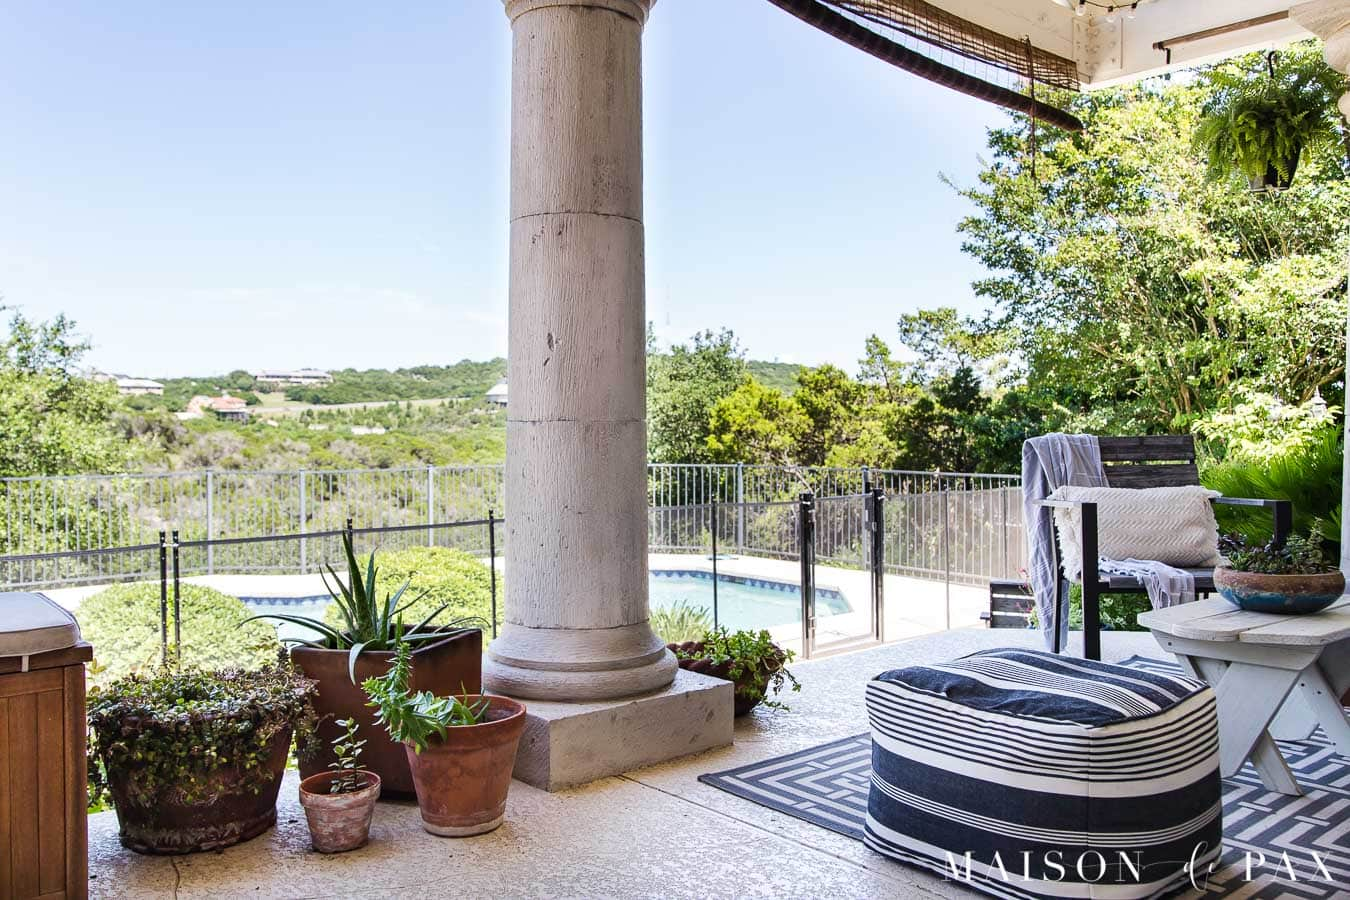 patio with large columns overlooking a pool and green hill country view | Maison de Pax